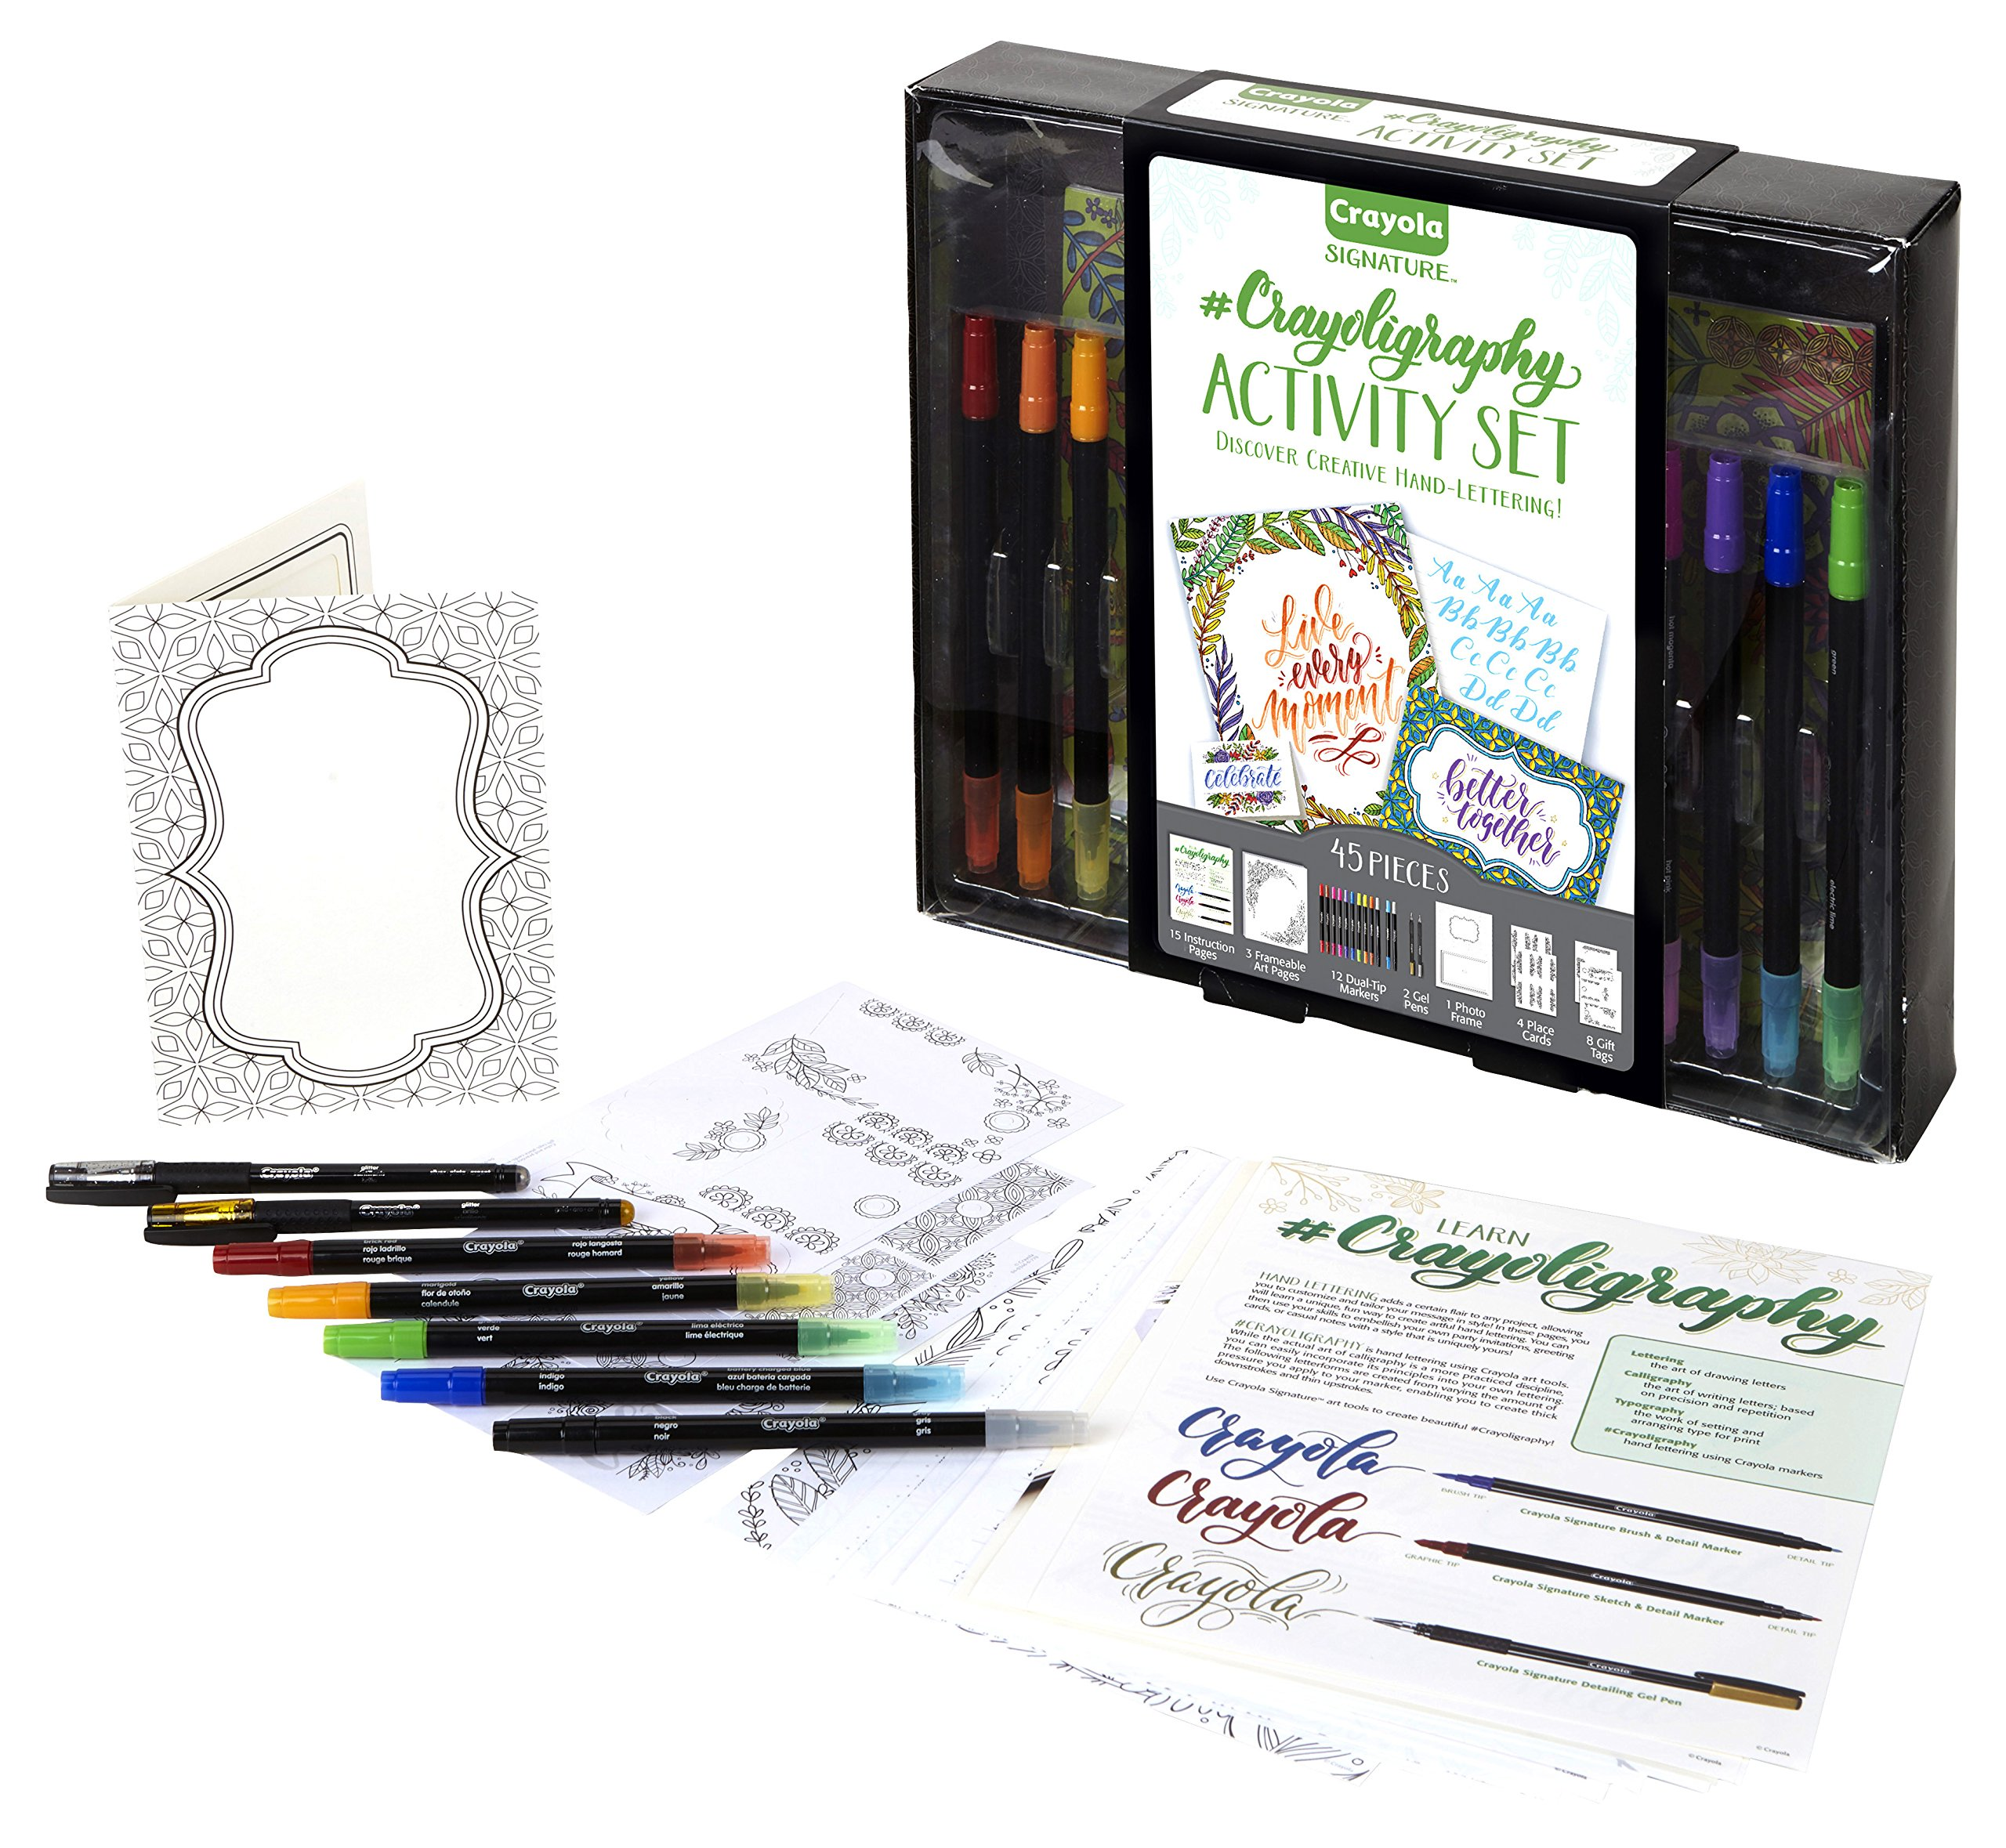 Crayola Beginner Hand Lettering Kit with Tutorials, Easier Than Calligraphy, 45Piece, Gift by Crayola